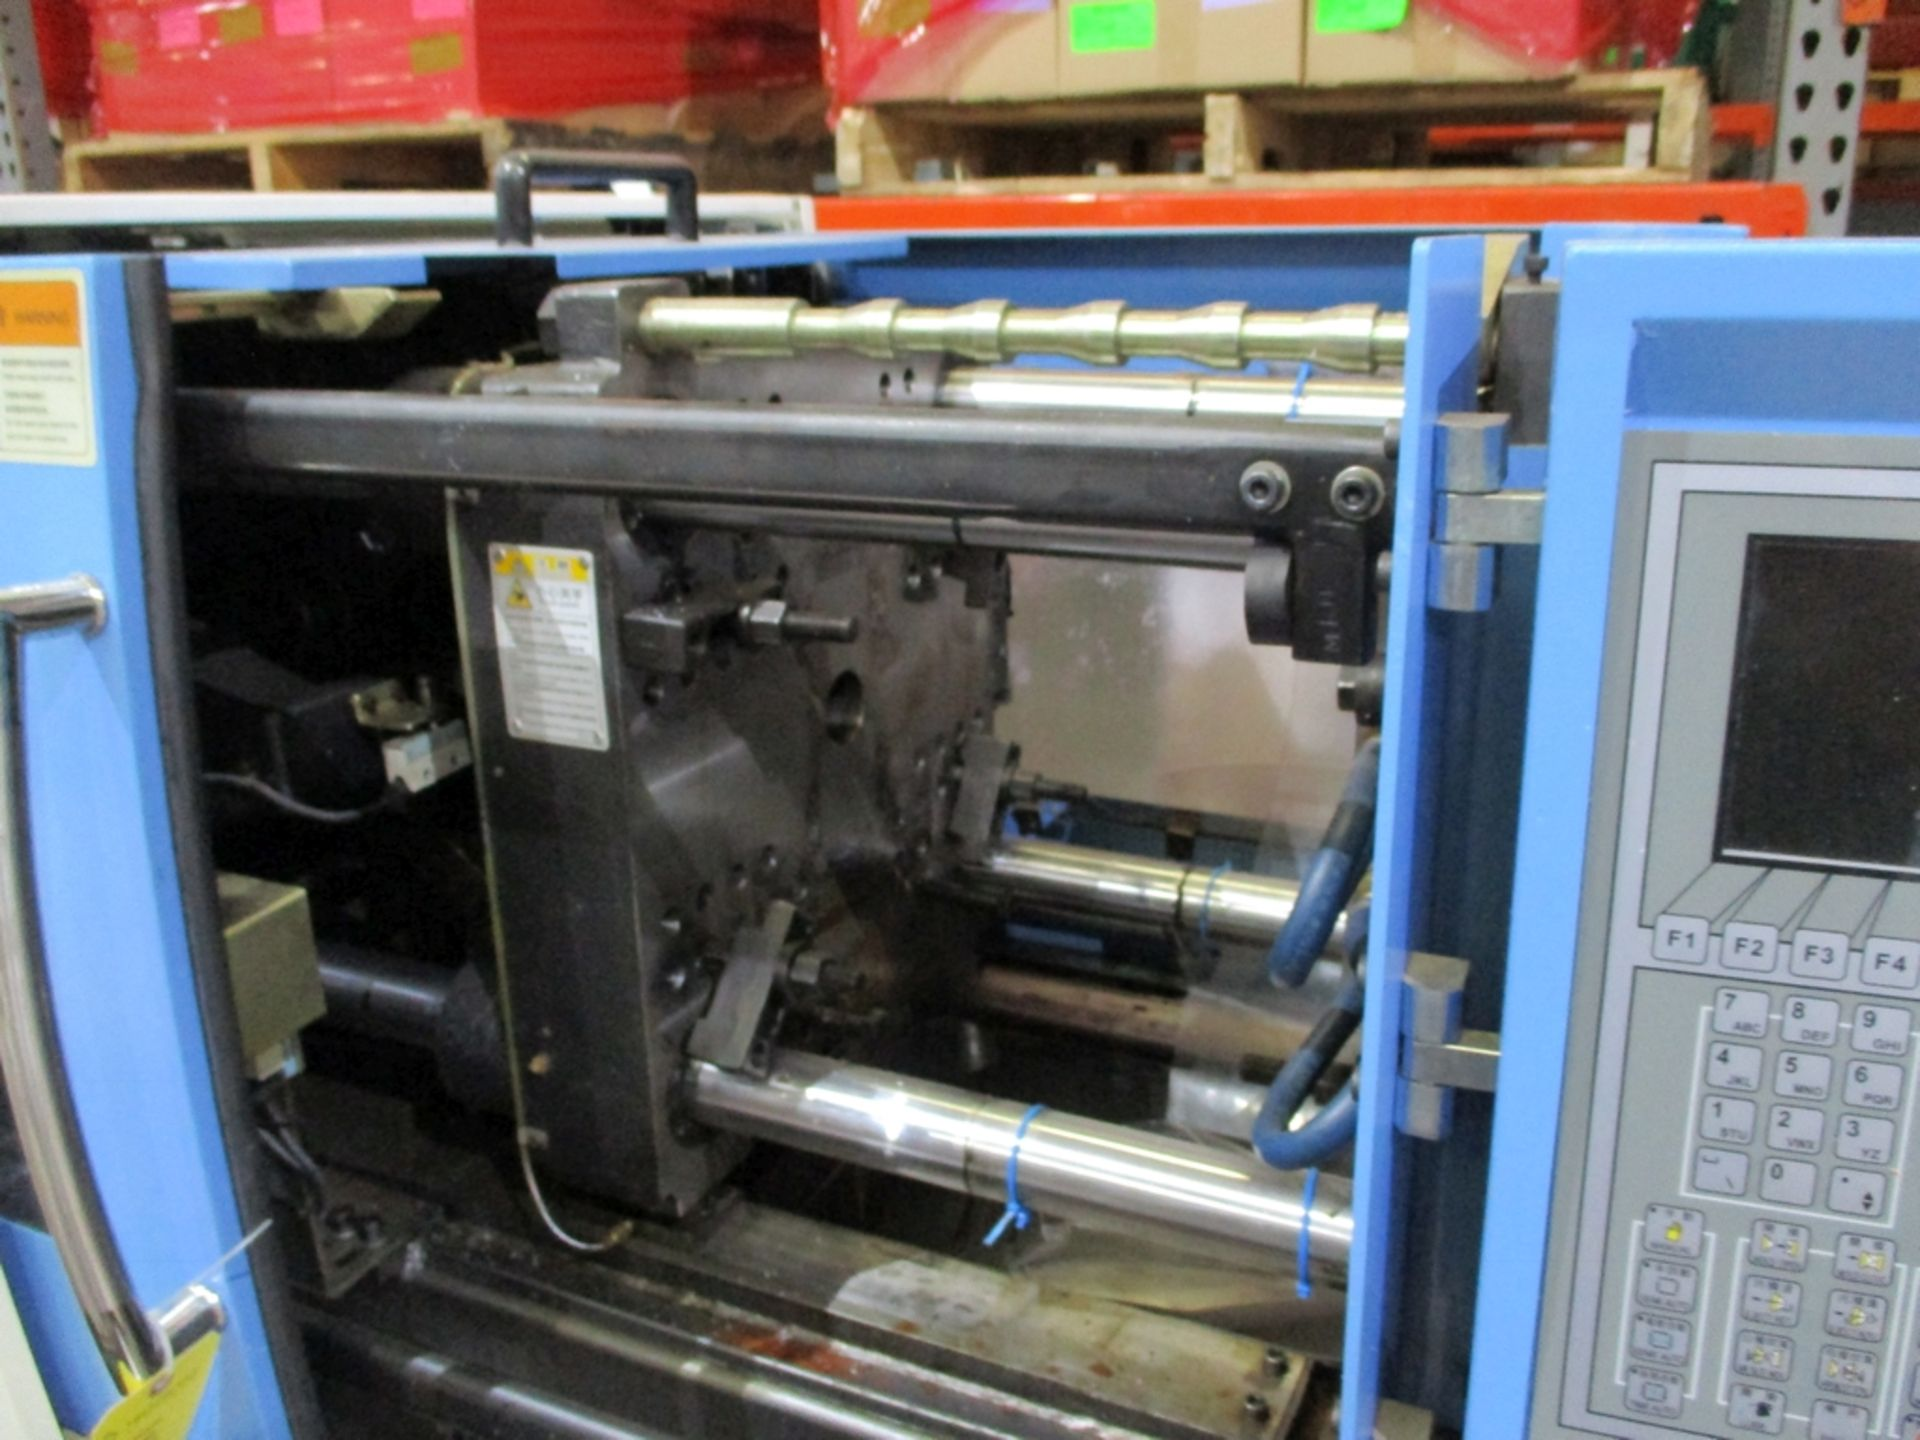 Lot 1012 - 2013 Powerjet BJ50-V6 50 Ton Injection Molding Machine - Variable Pump; Clamping Force: 50 Ton;